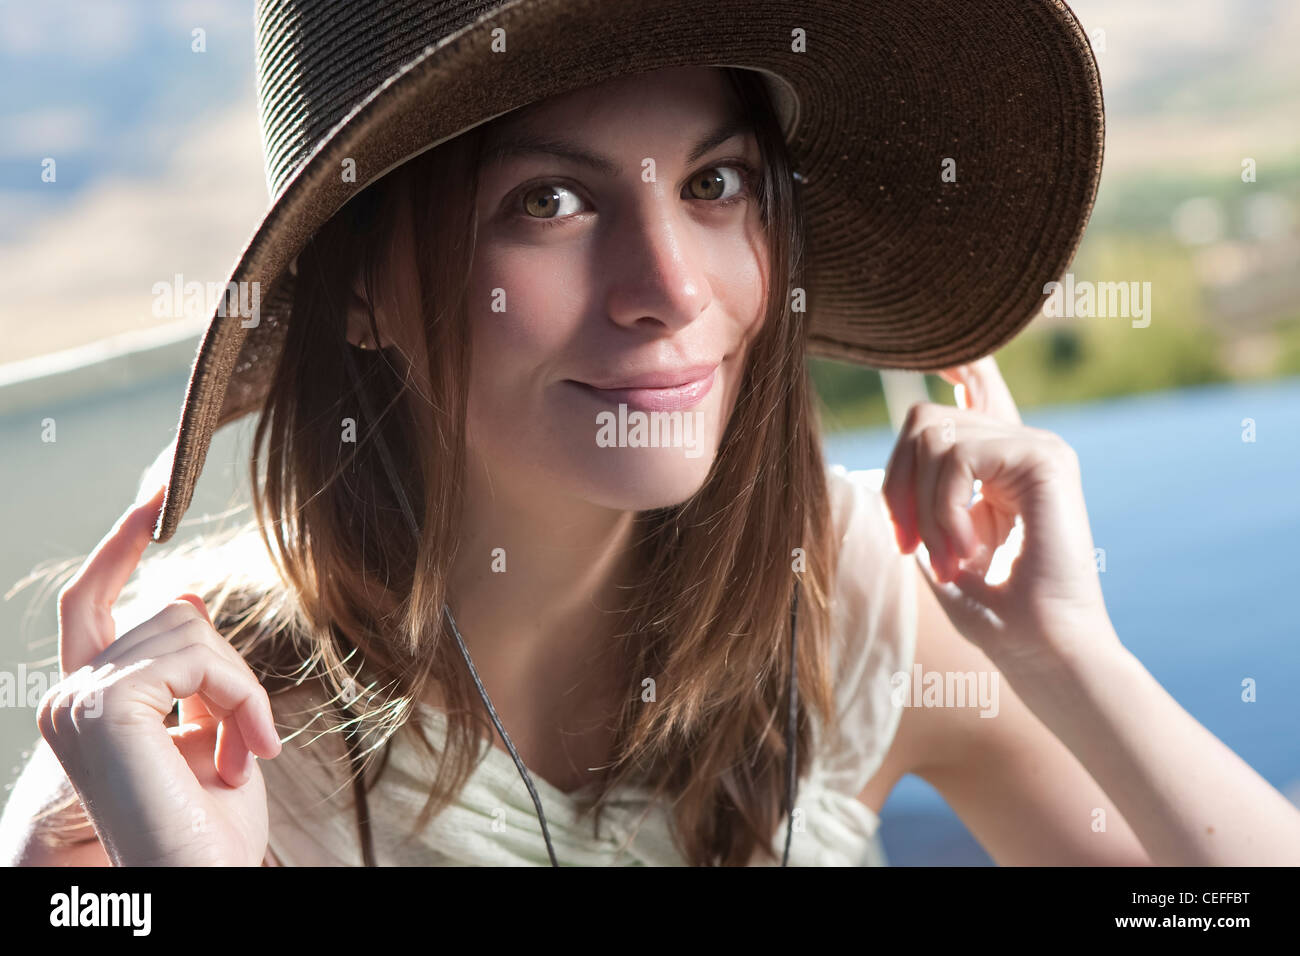 Smiling woman wearing hat outdoors - Stock Image